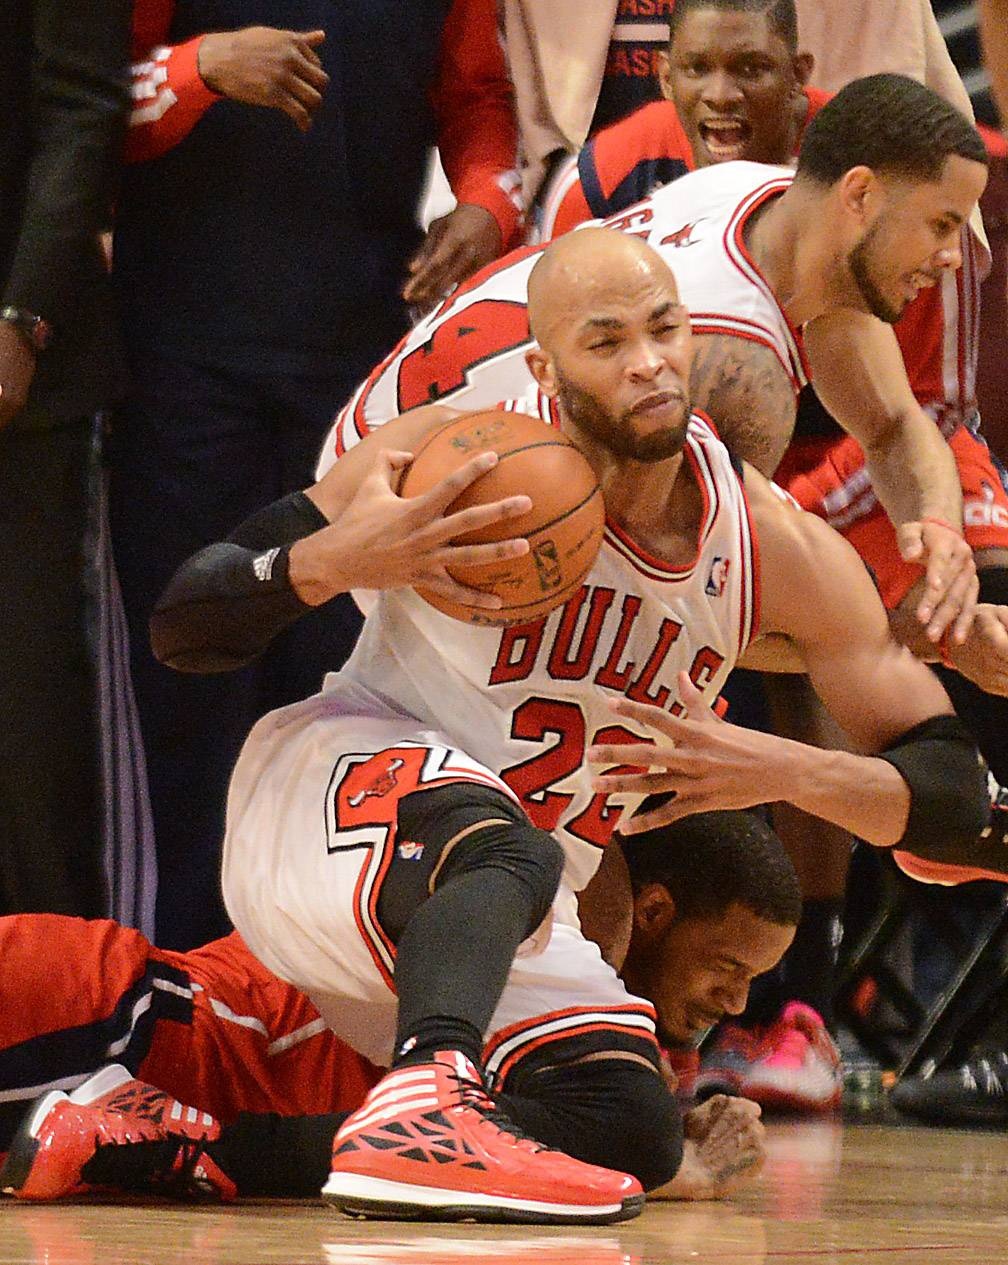 Chicago Bulls forward Taj Gibson (22) goes to the ground in a scramble for the ball.